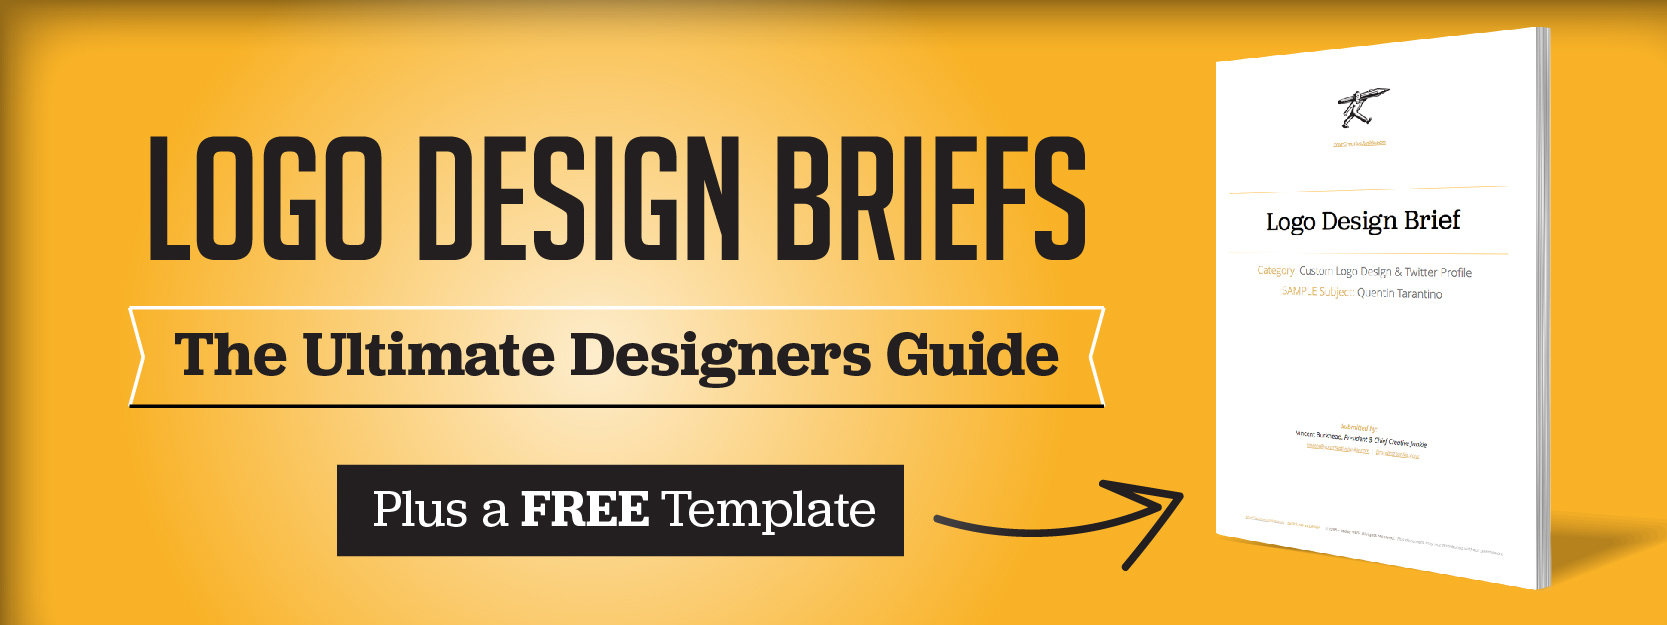 logo design brief the ultimate guide for designers